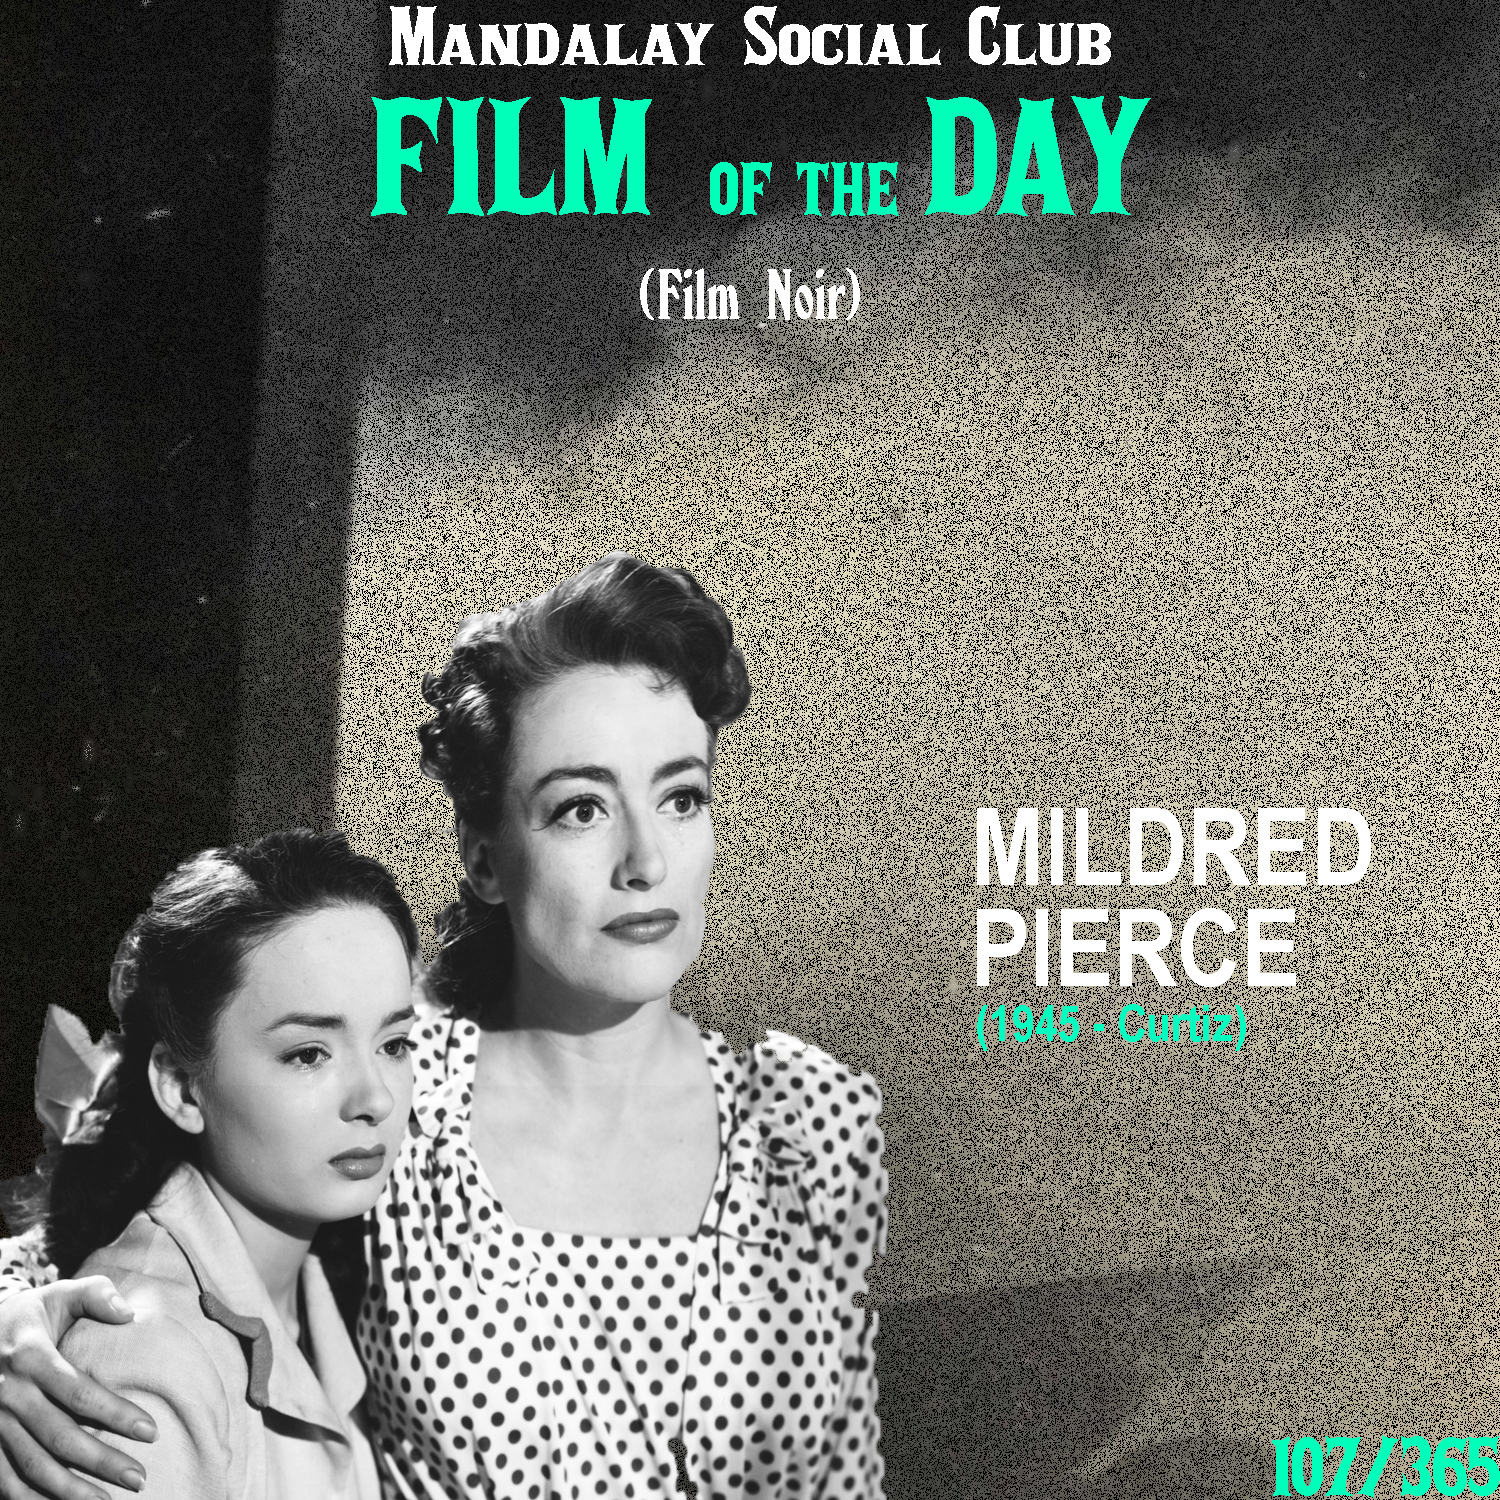 MILDRED PIERCE     (dir. Michael Curtiz)   From the director that brought us  Casablanca , Michael Curtiz orchestrates one of the most moving film noirs of the era with  Mildred Pierce !   Mildred Pierce  is a more unconventional noir, in that it doesn't follow the traditional route of following a man living in a life of crime. Instead, it stars Joan Crawford as the title character. She's a hardworking woman who, after leaving her husband, is forced to work as a waitress. She works hard and make good money, but she has to keep this 'working class' job a secret from her snobby and boujee daughter who demands only the finest things. Mildred eventually meets the son of a wealthy family who she marries to help give her daughter the high class life she yearns for. However, things don't go as planned when her new husband ends up dead and Mildred is the one being questioned.   Mildred Pierce  is more of a crime drama with hints of noir, then a straight forward film noir. However, it's use of black and white photography with the cynical undertones of the film give it the raging atmospheric noir mood that's found in any great nori of the 40s and 50s!   4.5/5    WATCH: Criterion Channel